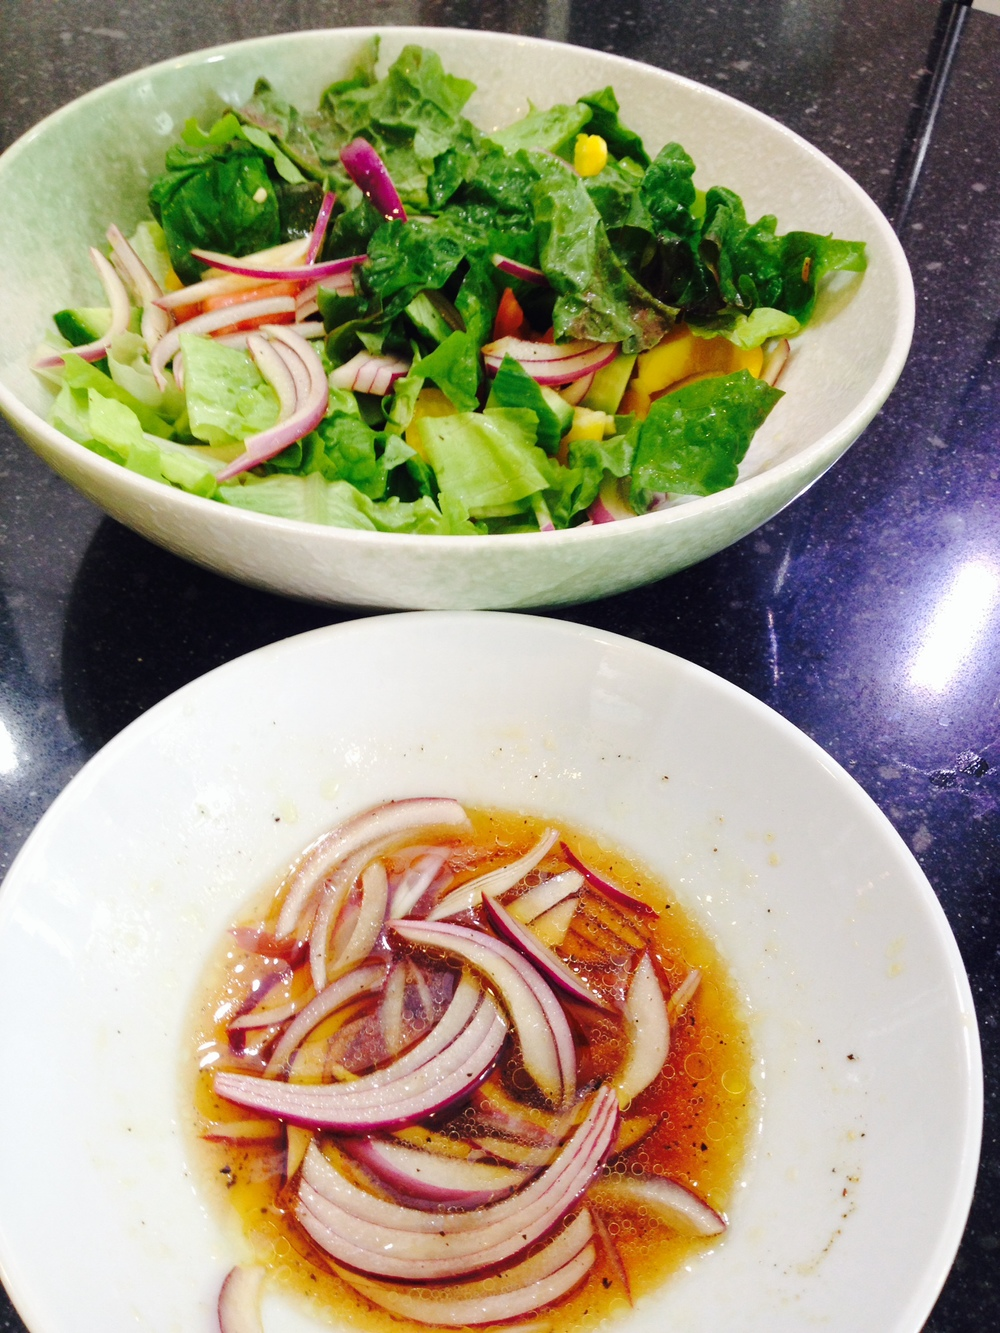 The red onion is soaking up the goodness from the dressing before getting tossed in the big bowl of salad.